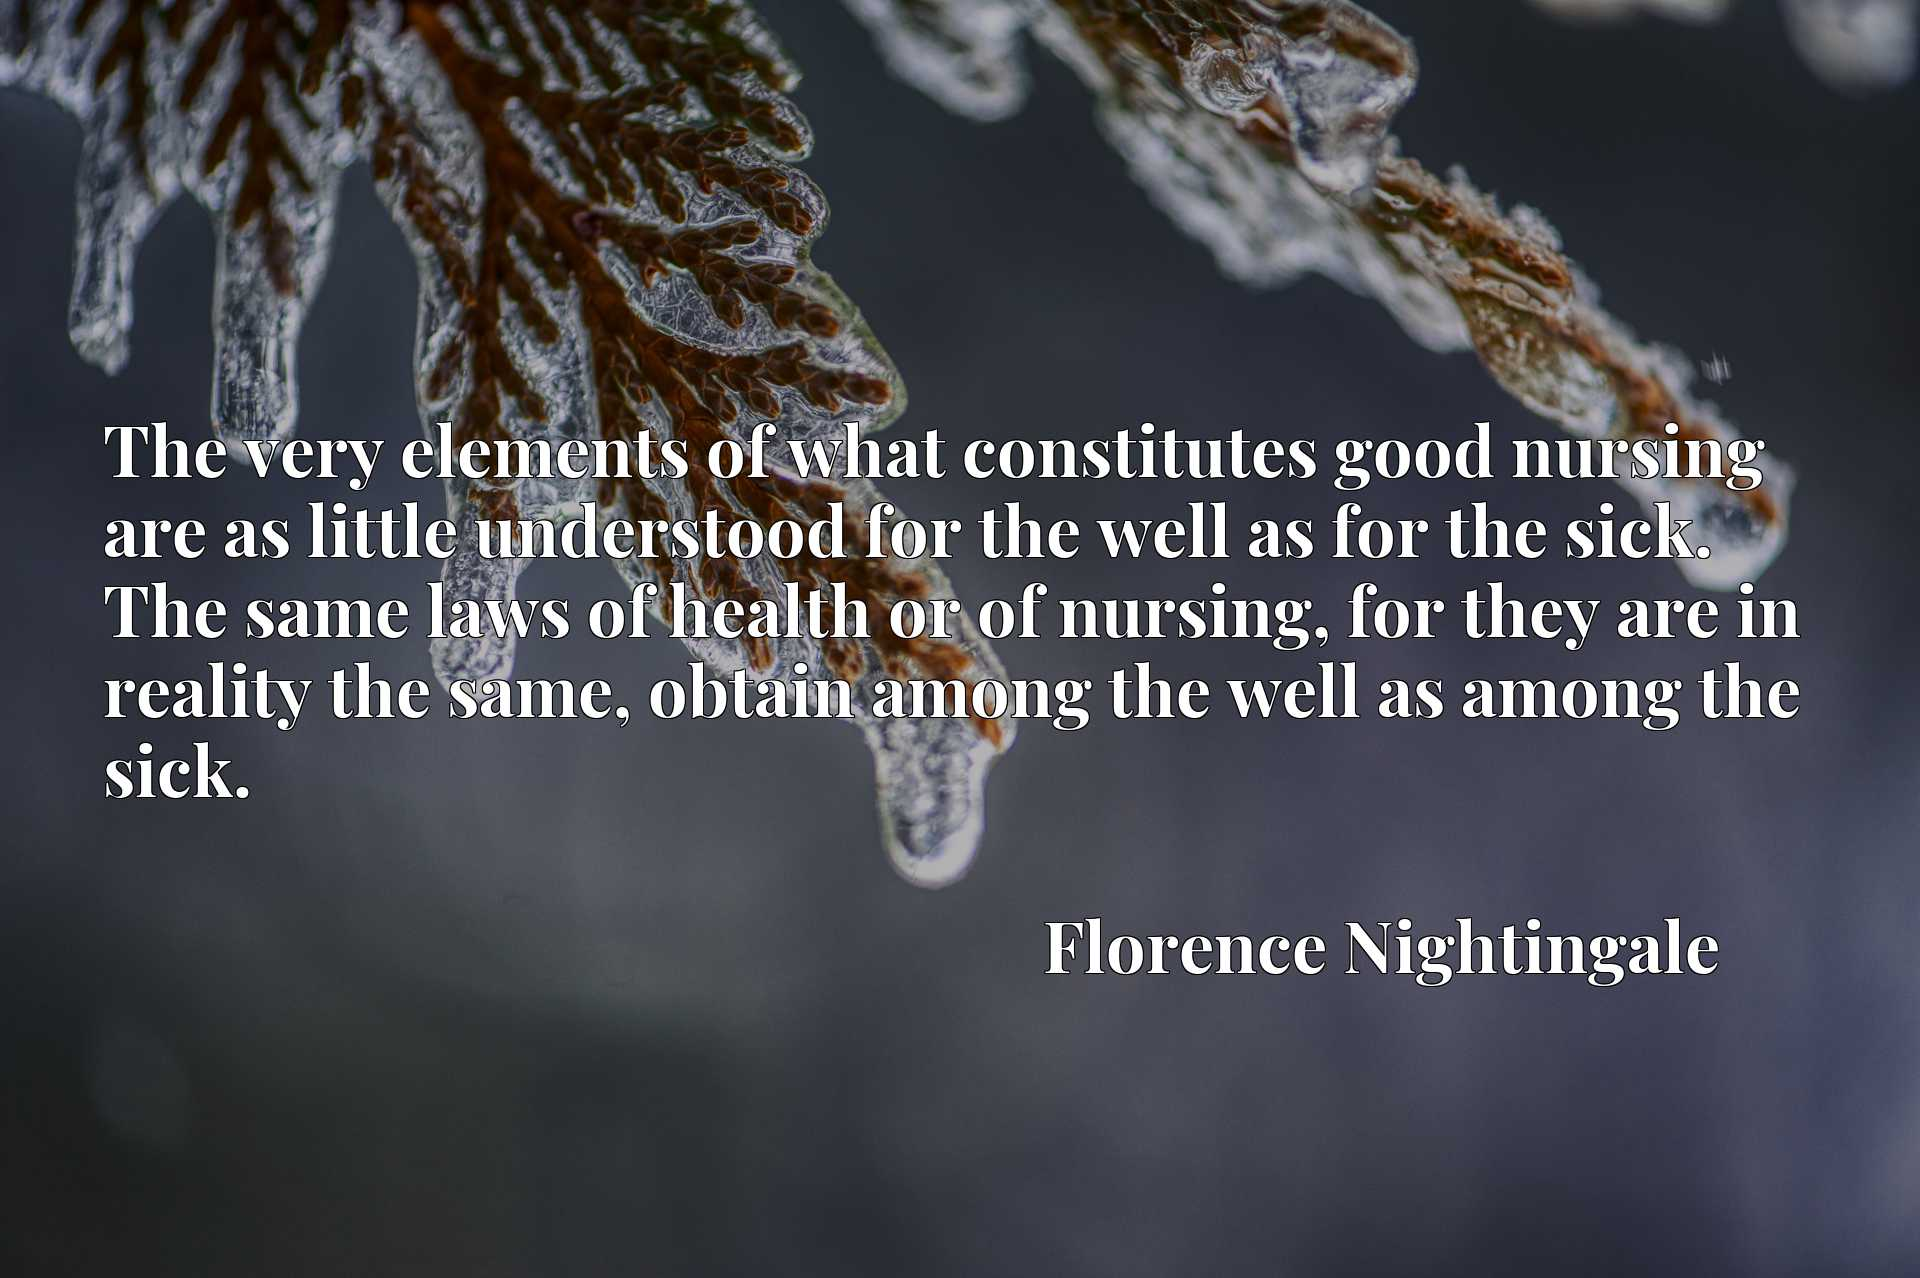 The very elements of what constitutes good nursing are as little understood for the well as for the sick. The same laws of health or of nursing, for they are in reality the same, obtain among the well as among the sick.